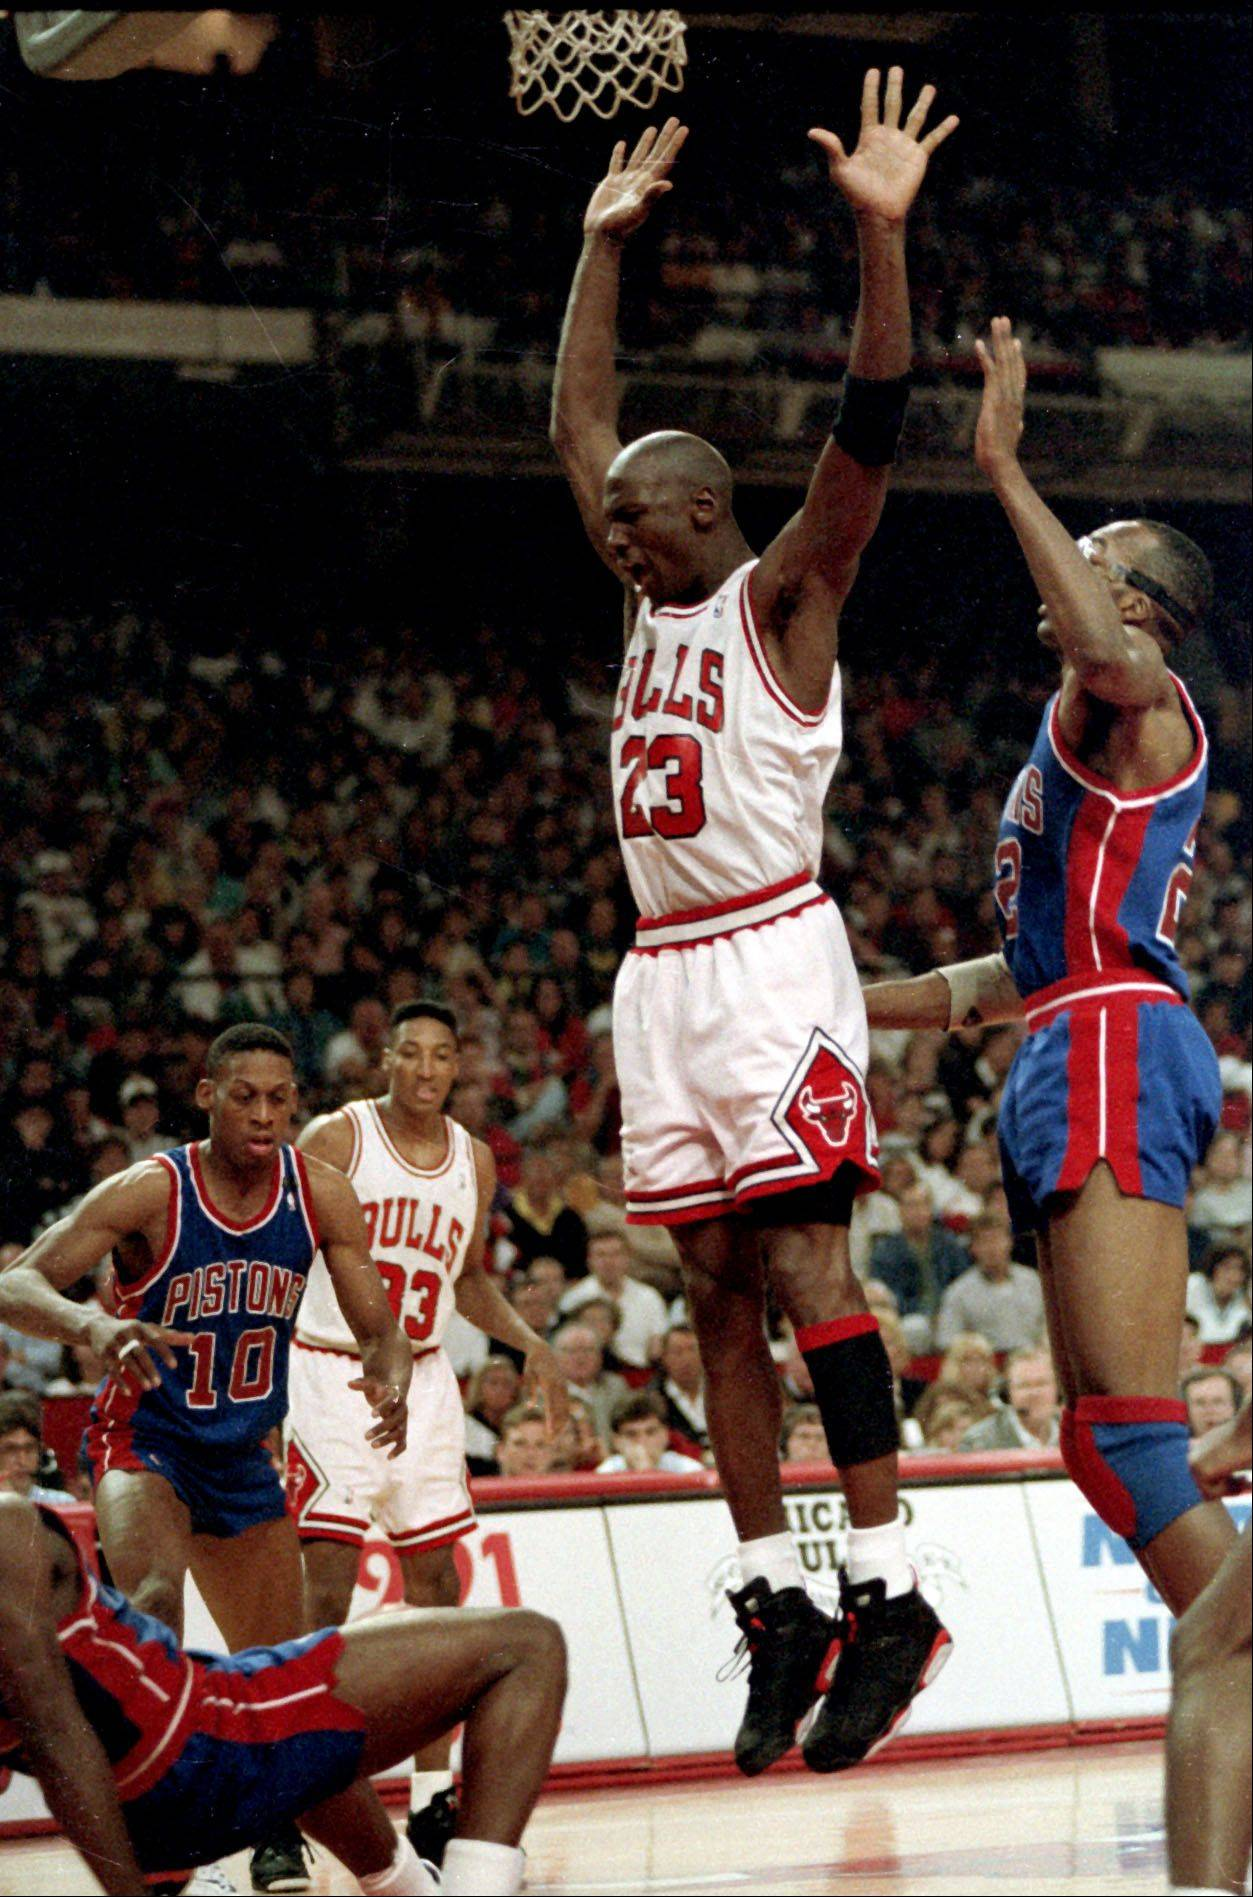 The Michael Jordan of the Chicago Bulls plays the Detroit Pistons during the 1991NBA Playoffs.